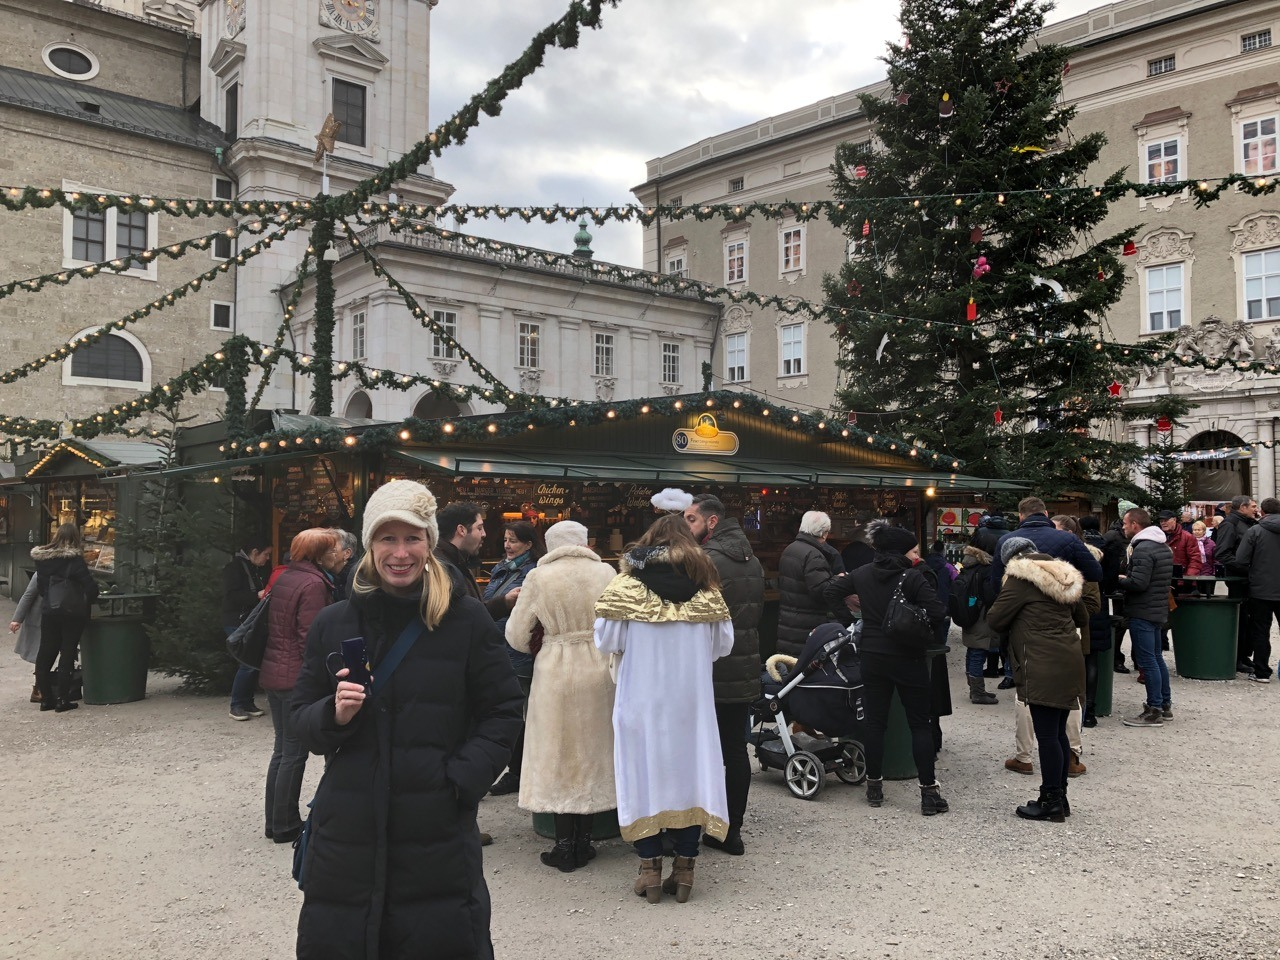 Visiting The Christmas Markets In Europe Fantasy Aisle